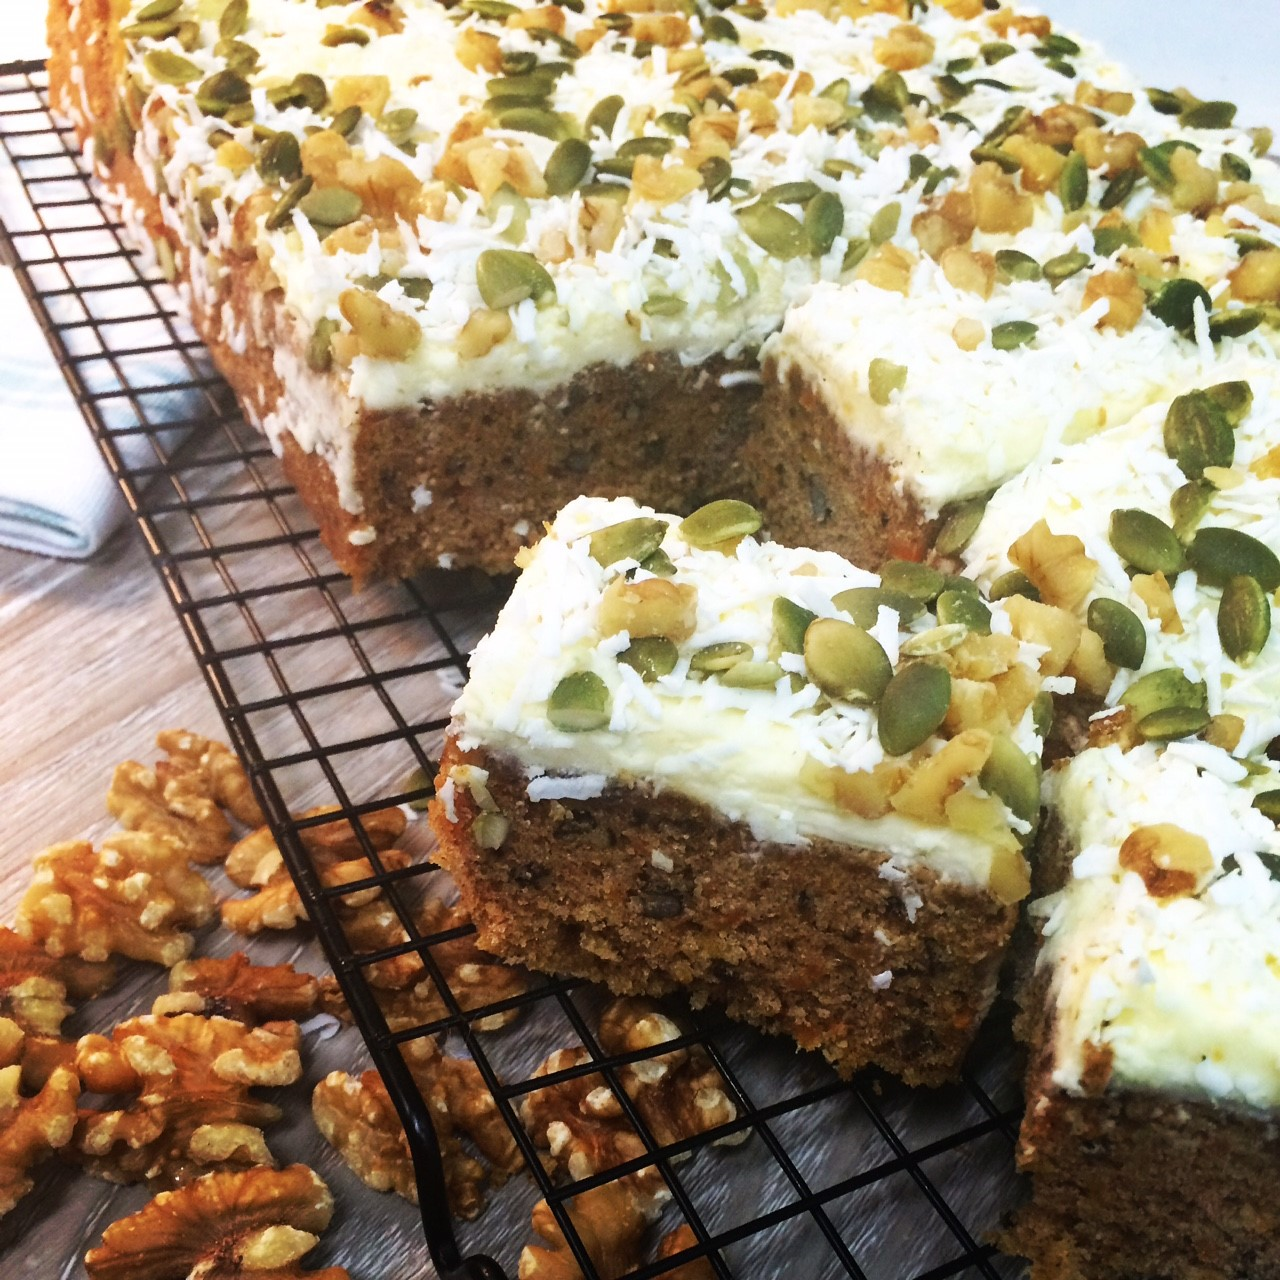 Carrot Cake with Cream Cheese Frosting    Cafe/Deli -Wholesale size 18pcs or Uncut